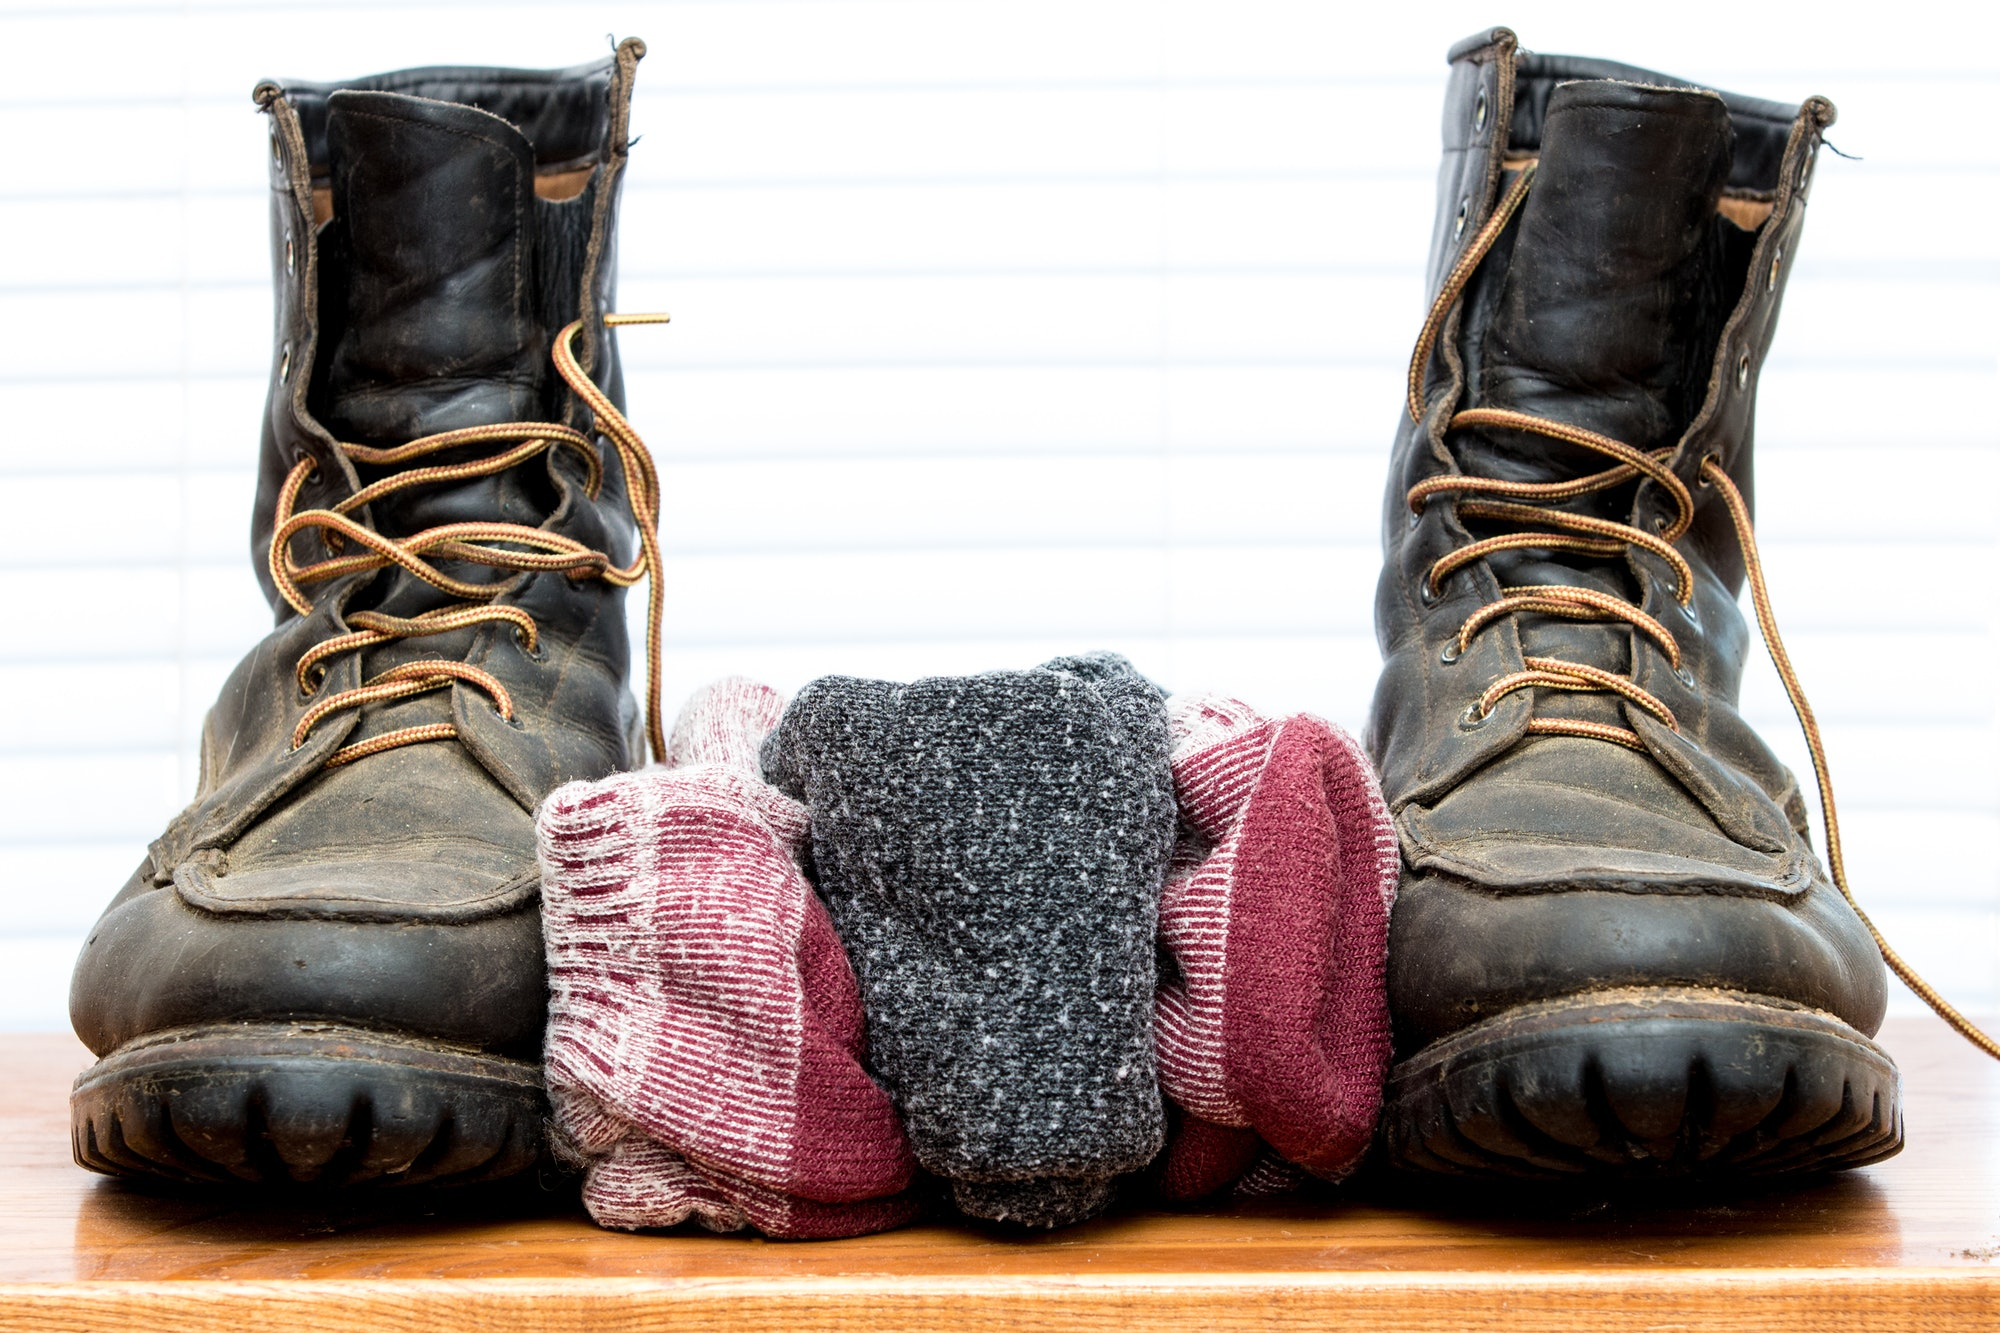 Wool Socks with Old Leather Boots Bookends